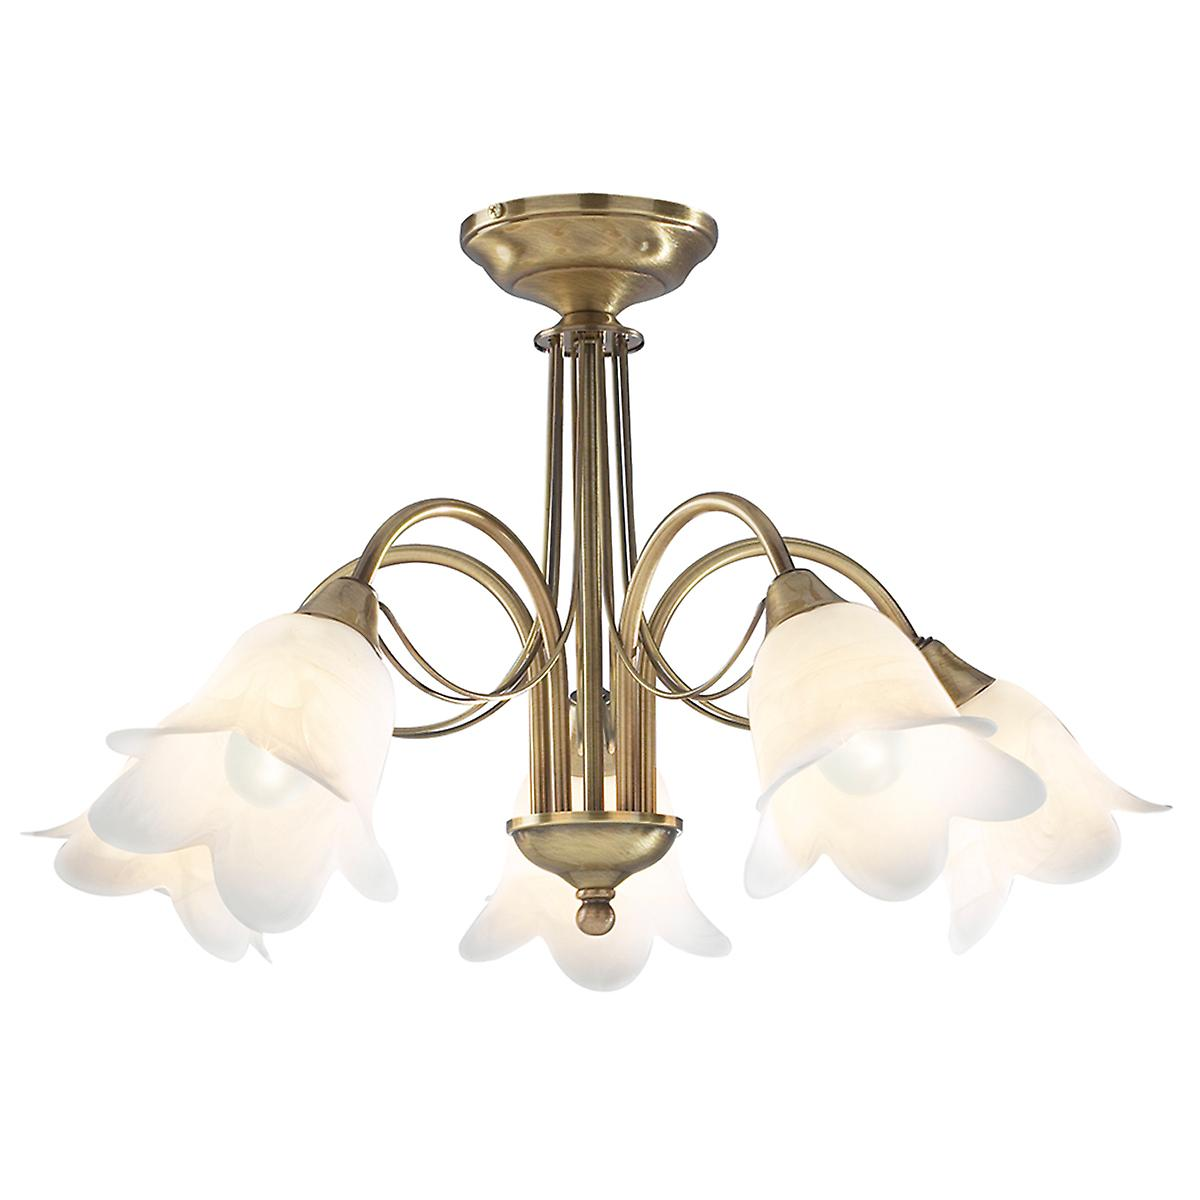 Dar DOU0575 Doublet Traditional Semi-Flush Ceiling 5 Light With Alabaster Glass